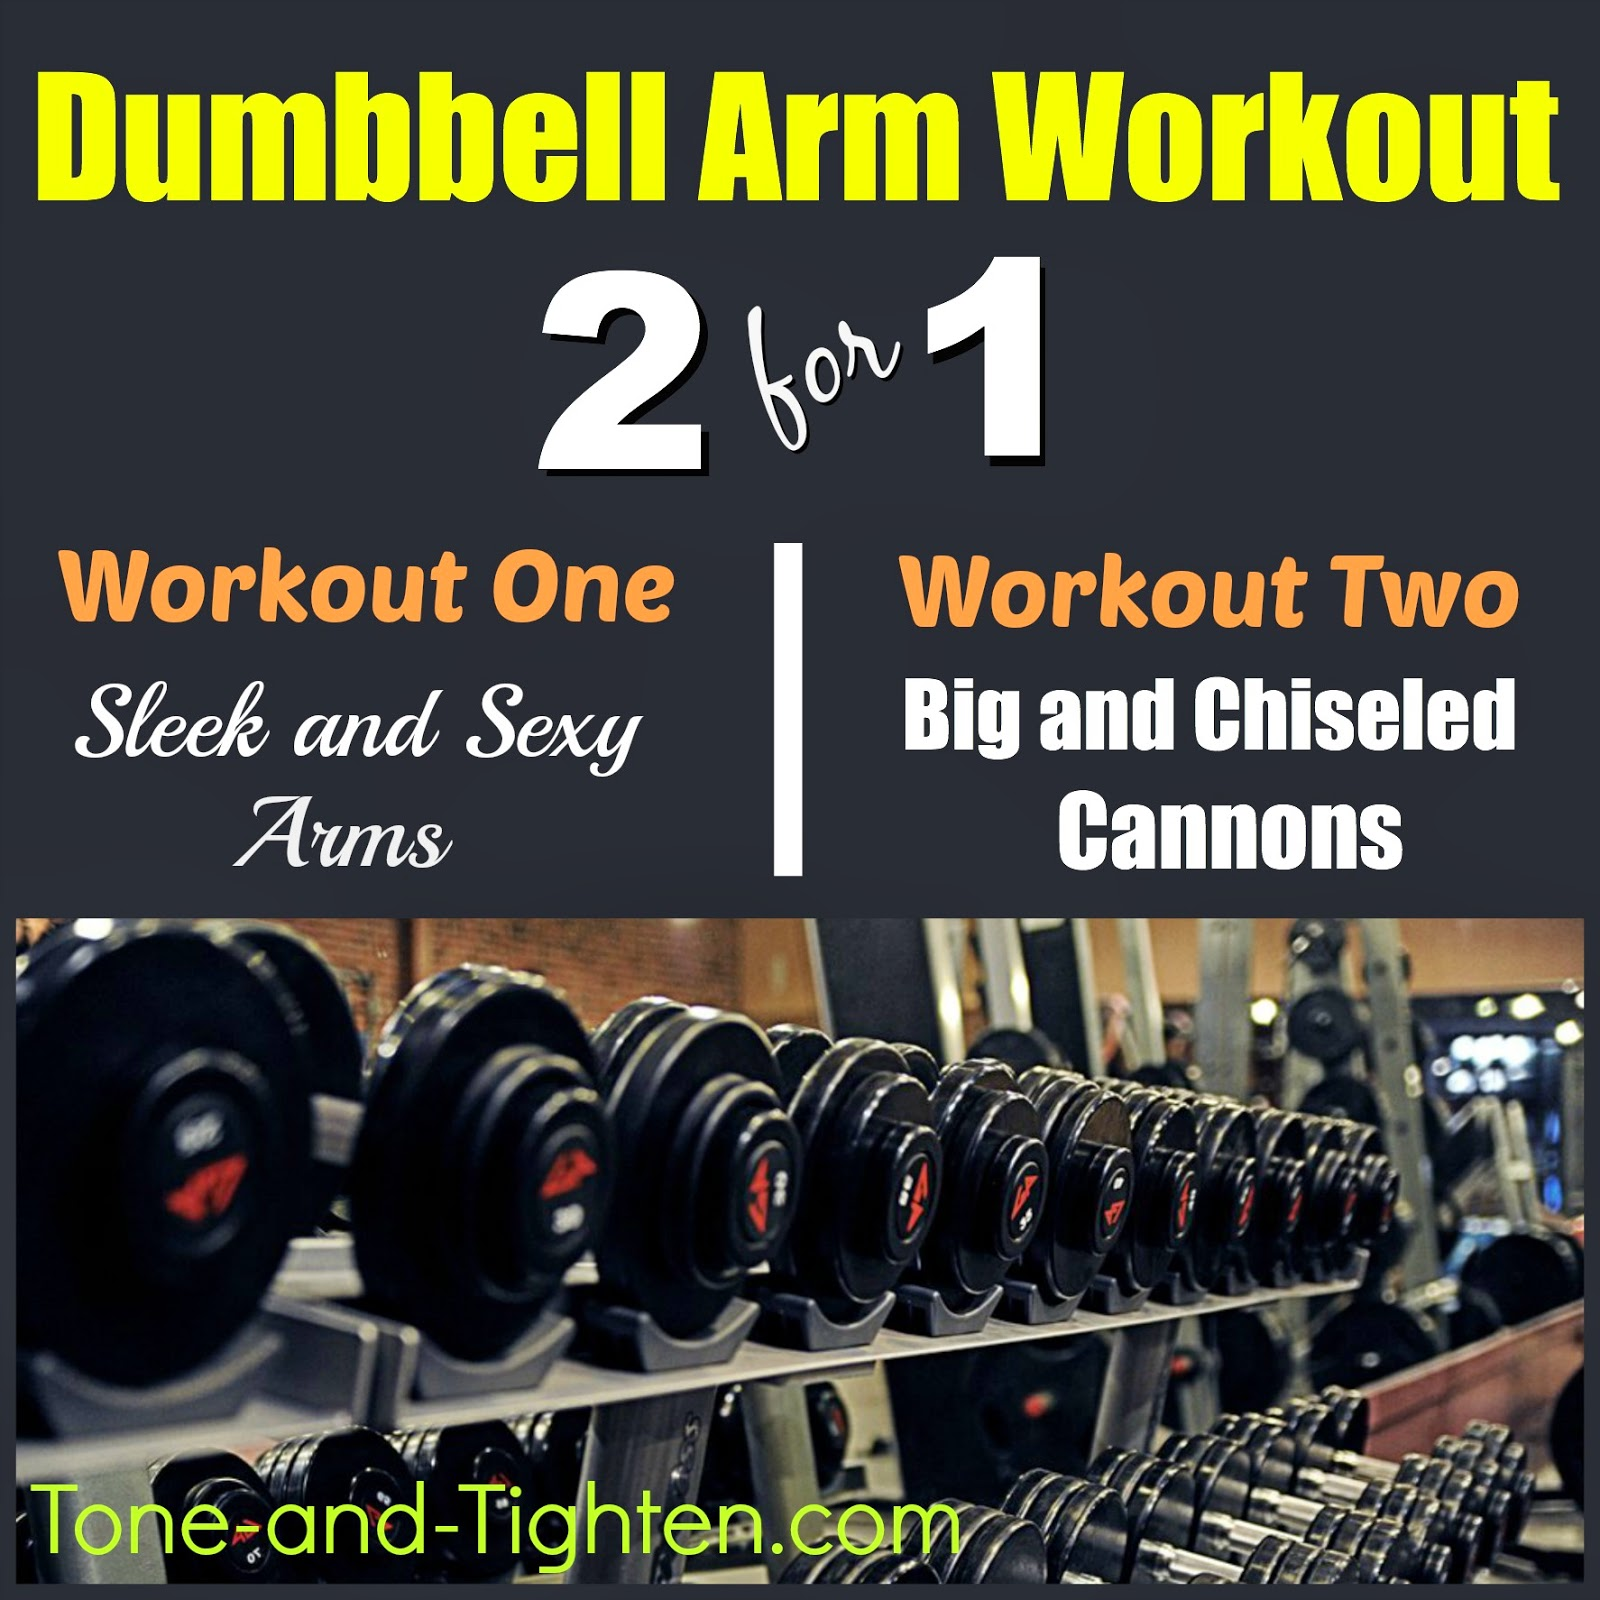 http://tone-and-tighten.com/2014/01/dumbbell-free-weight-arm-workout.html